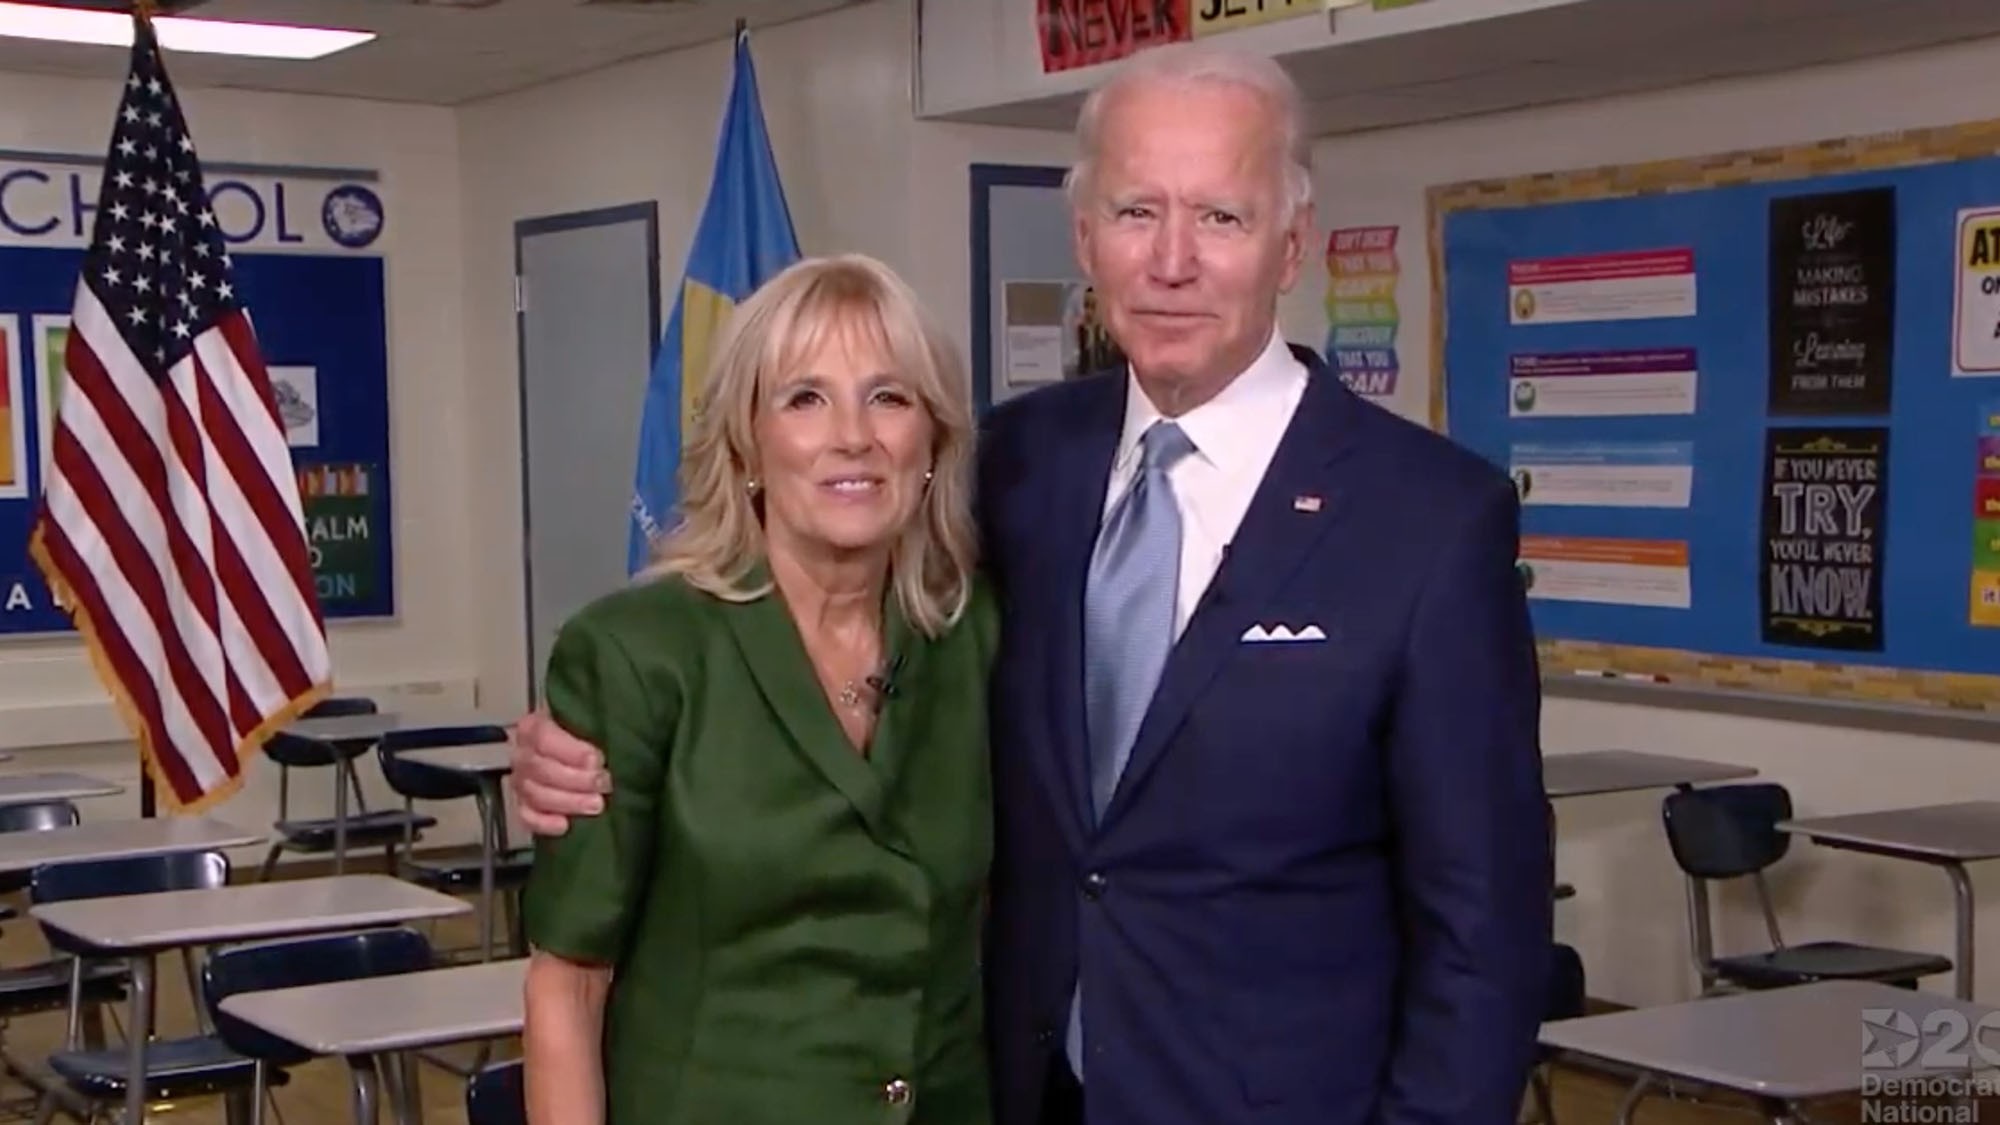 Former Second Lady Jill Biden and former Vice President Joe Biden stand together after remarks from Jill Biden on Tuesday, August 18, in Wilmington, Delaware.